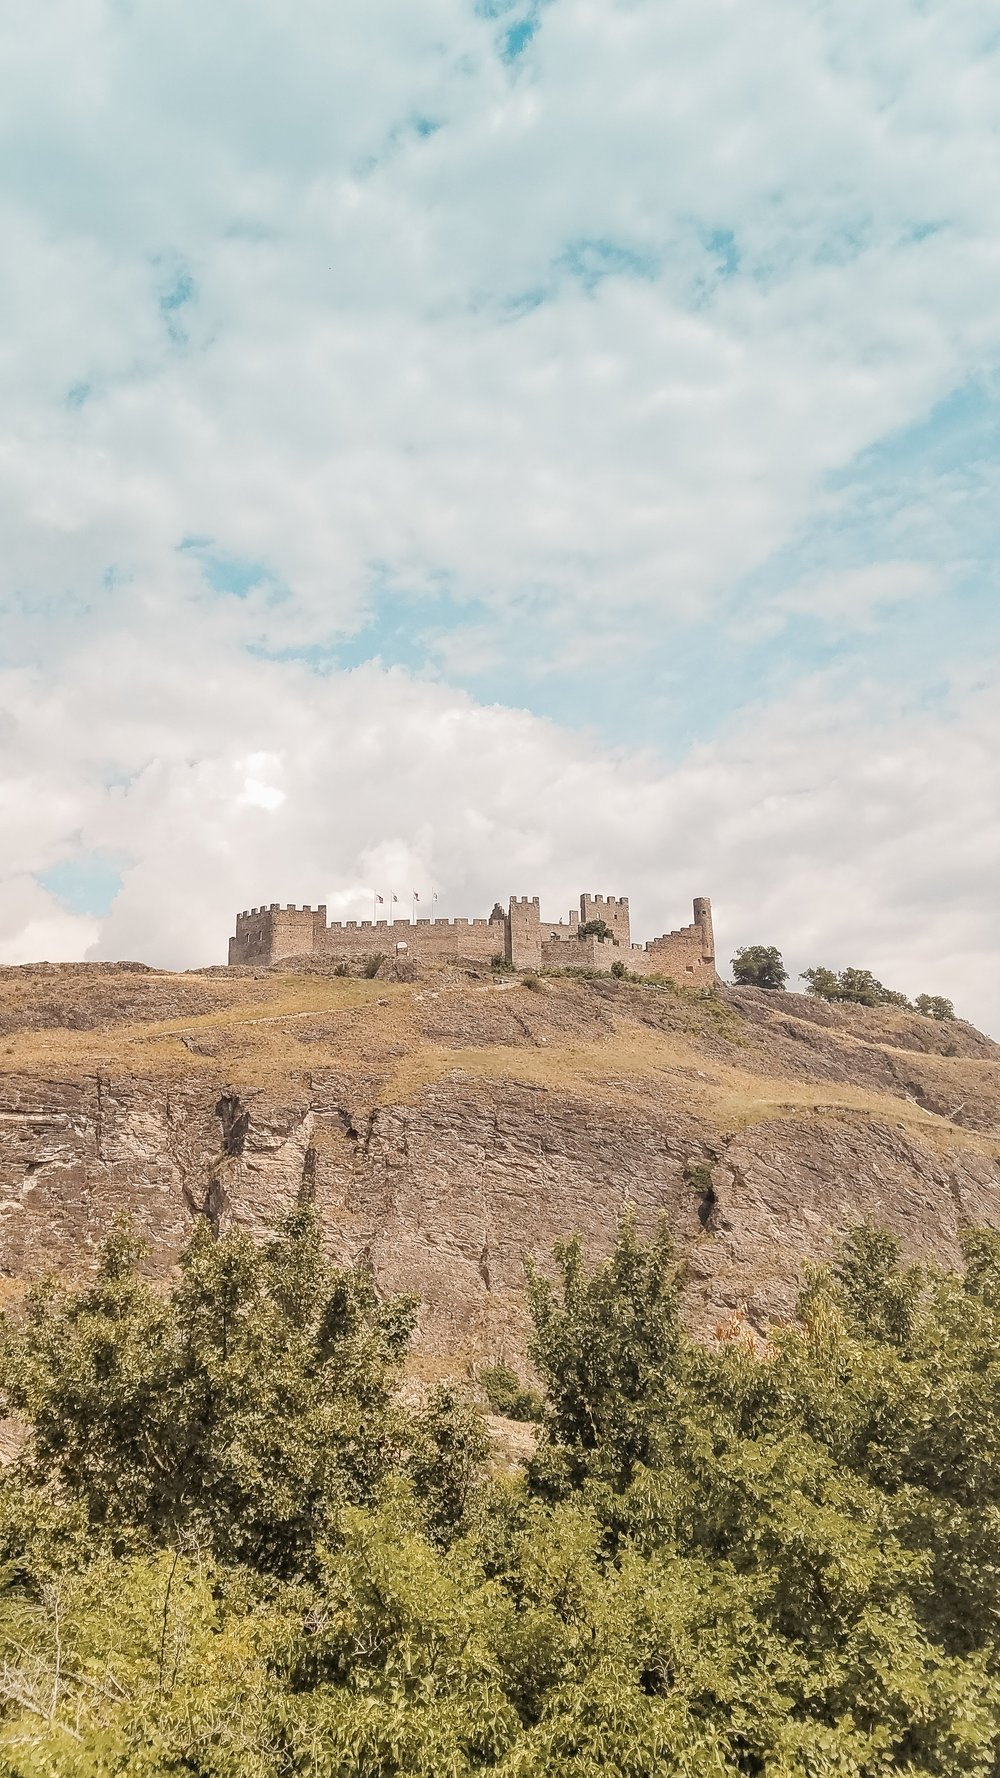 Tourbillon Castle in Sion can be seen from its neighboring chateau. You have to climb stairs uphill to reach either one, but the views are worth it. #Travel #Switzerland #Castle #Travelblogging #Lifestyle #TravelTip #swisscastle